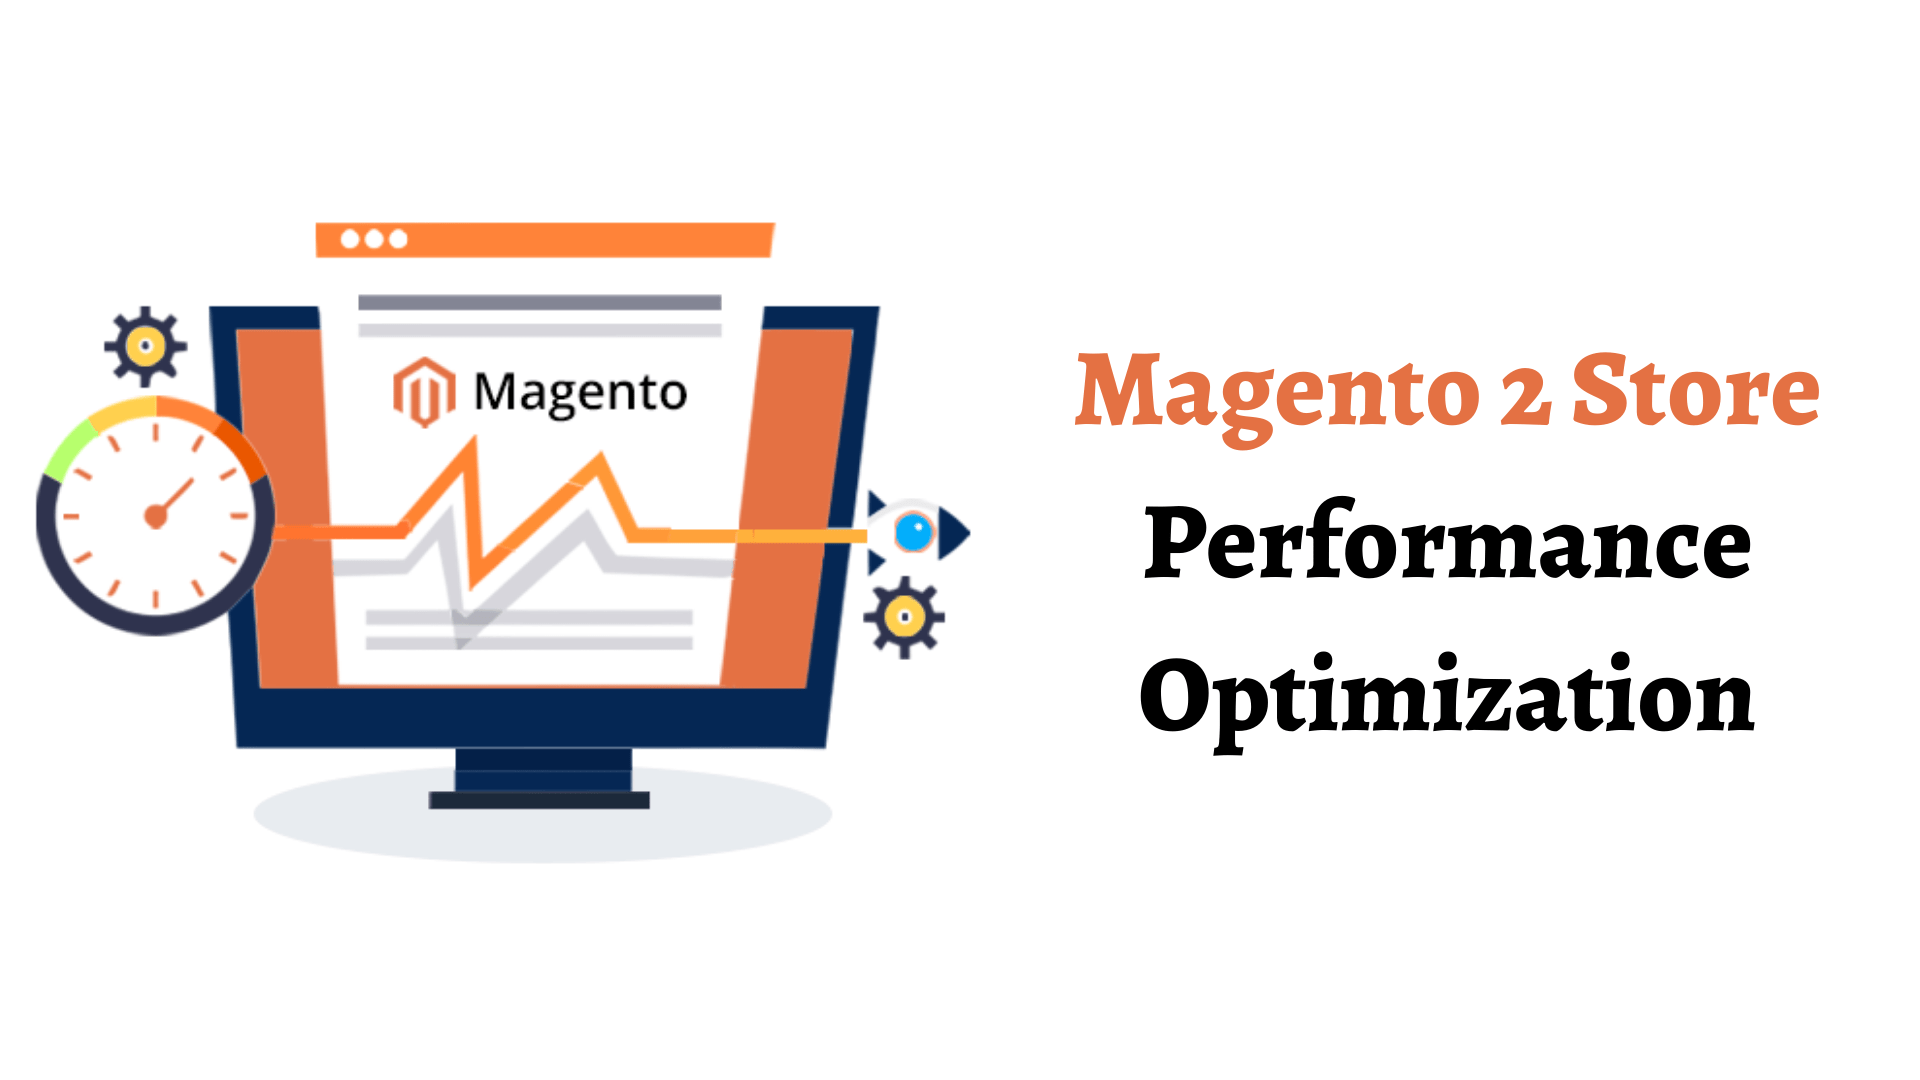 Optimize your store performance with Magento 2